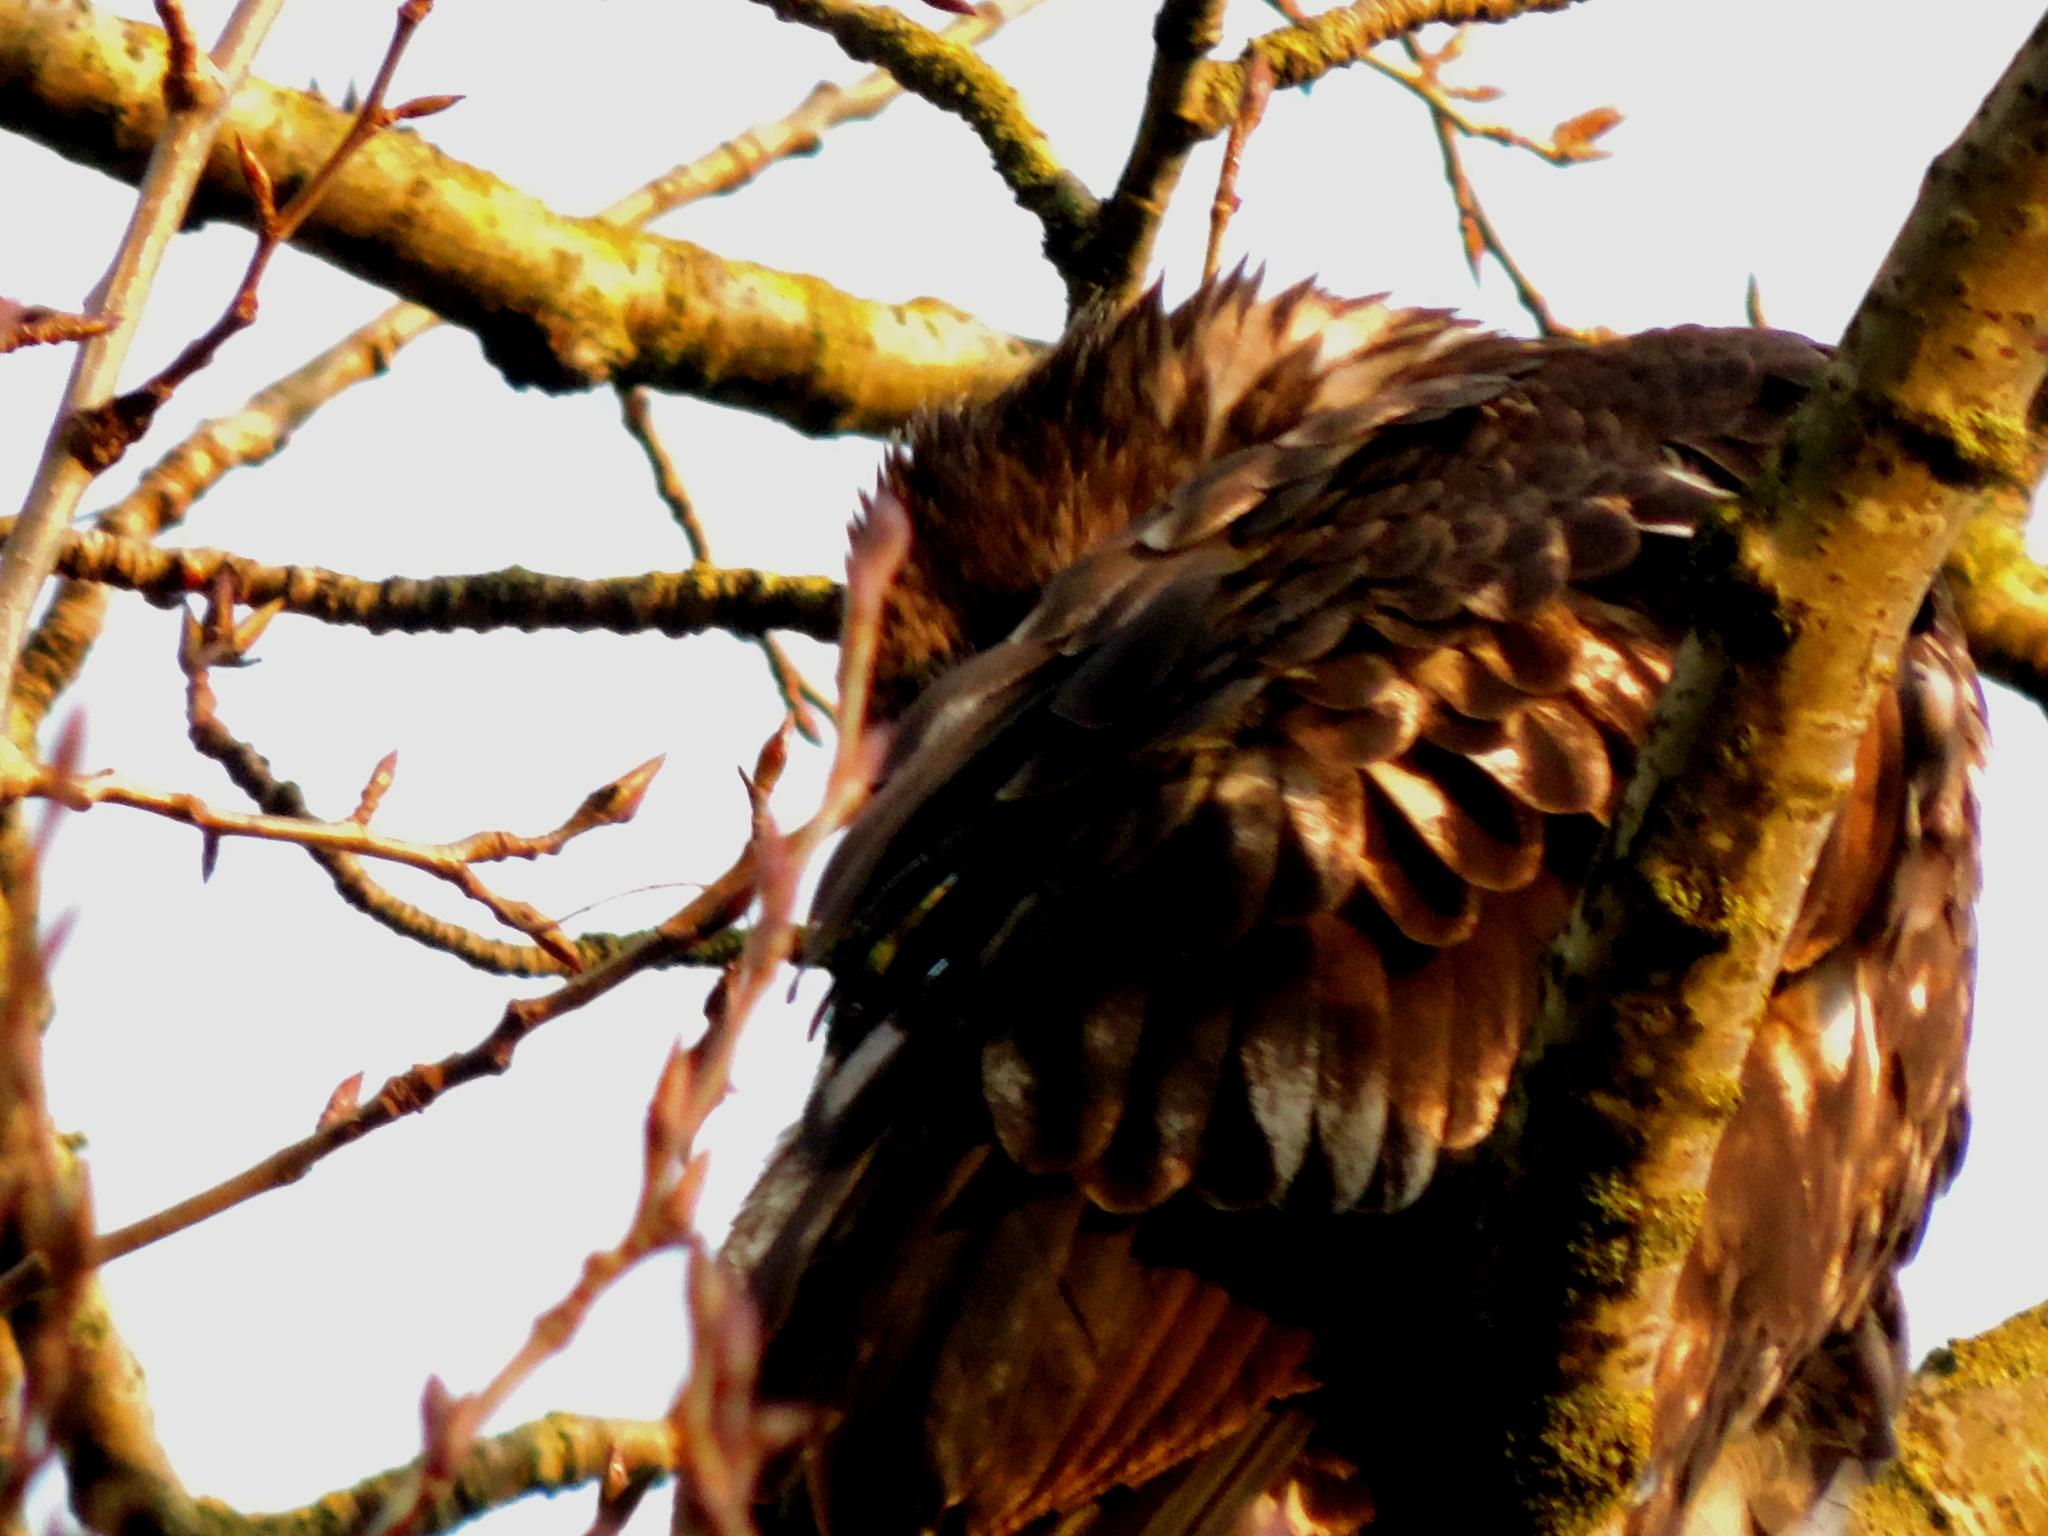 Golden Eagle by henrywall63